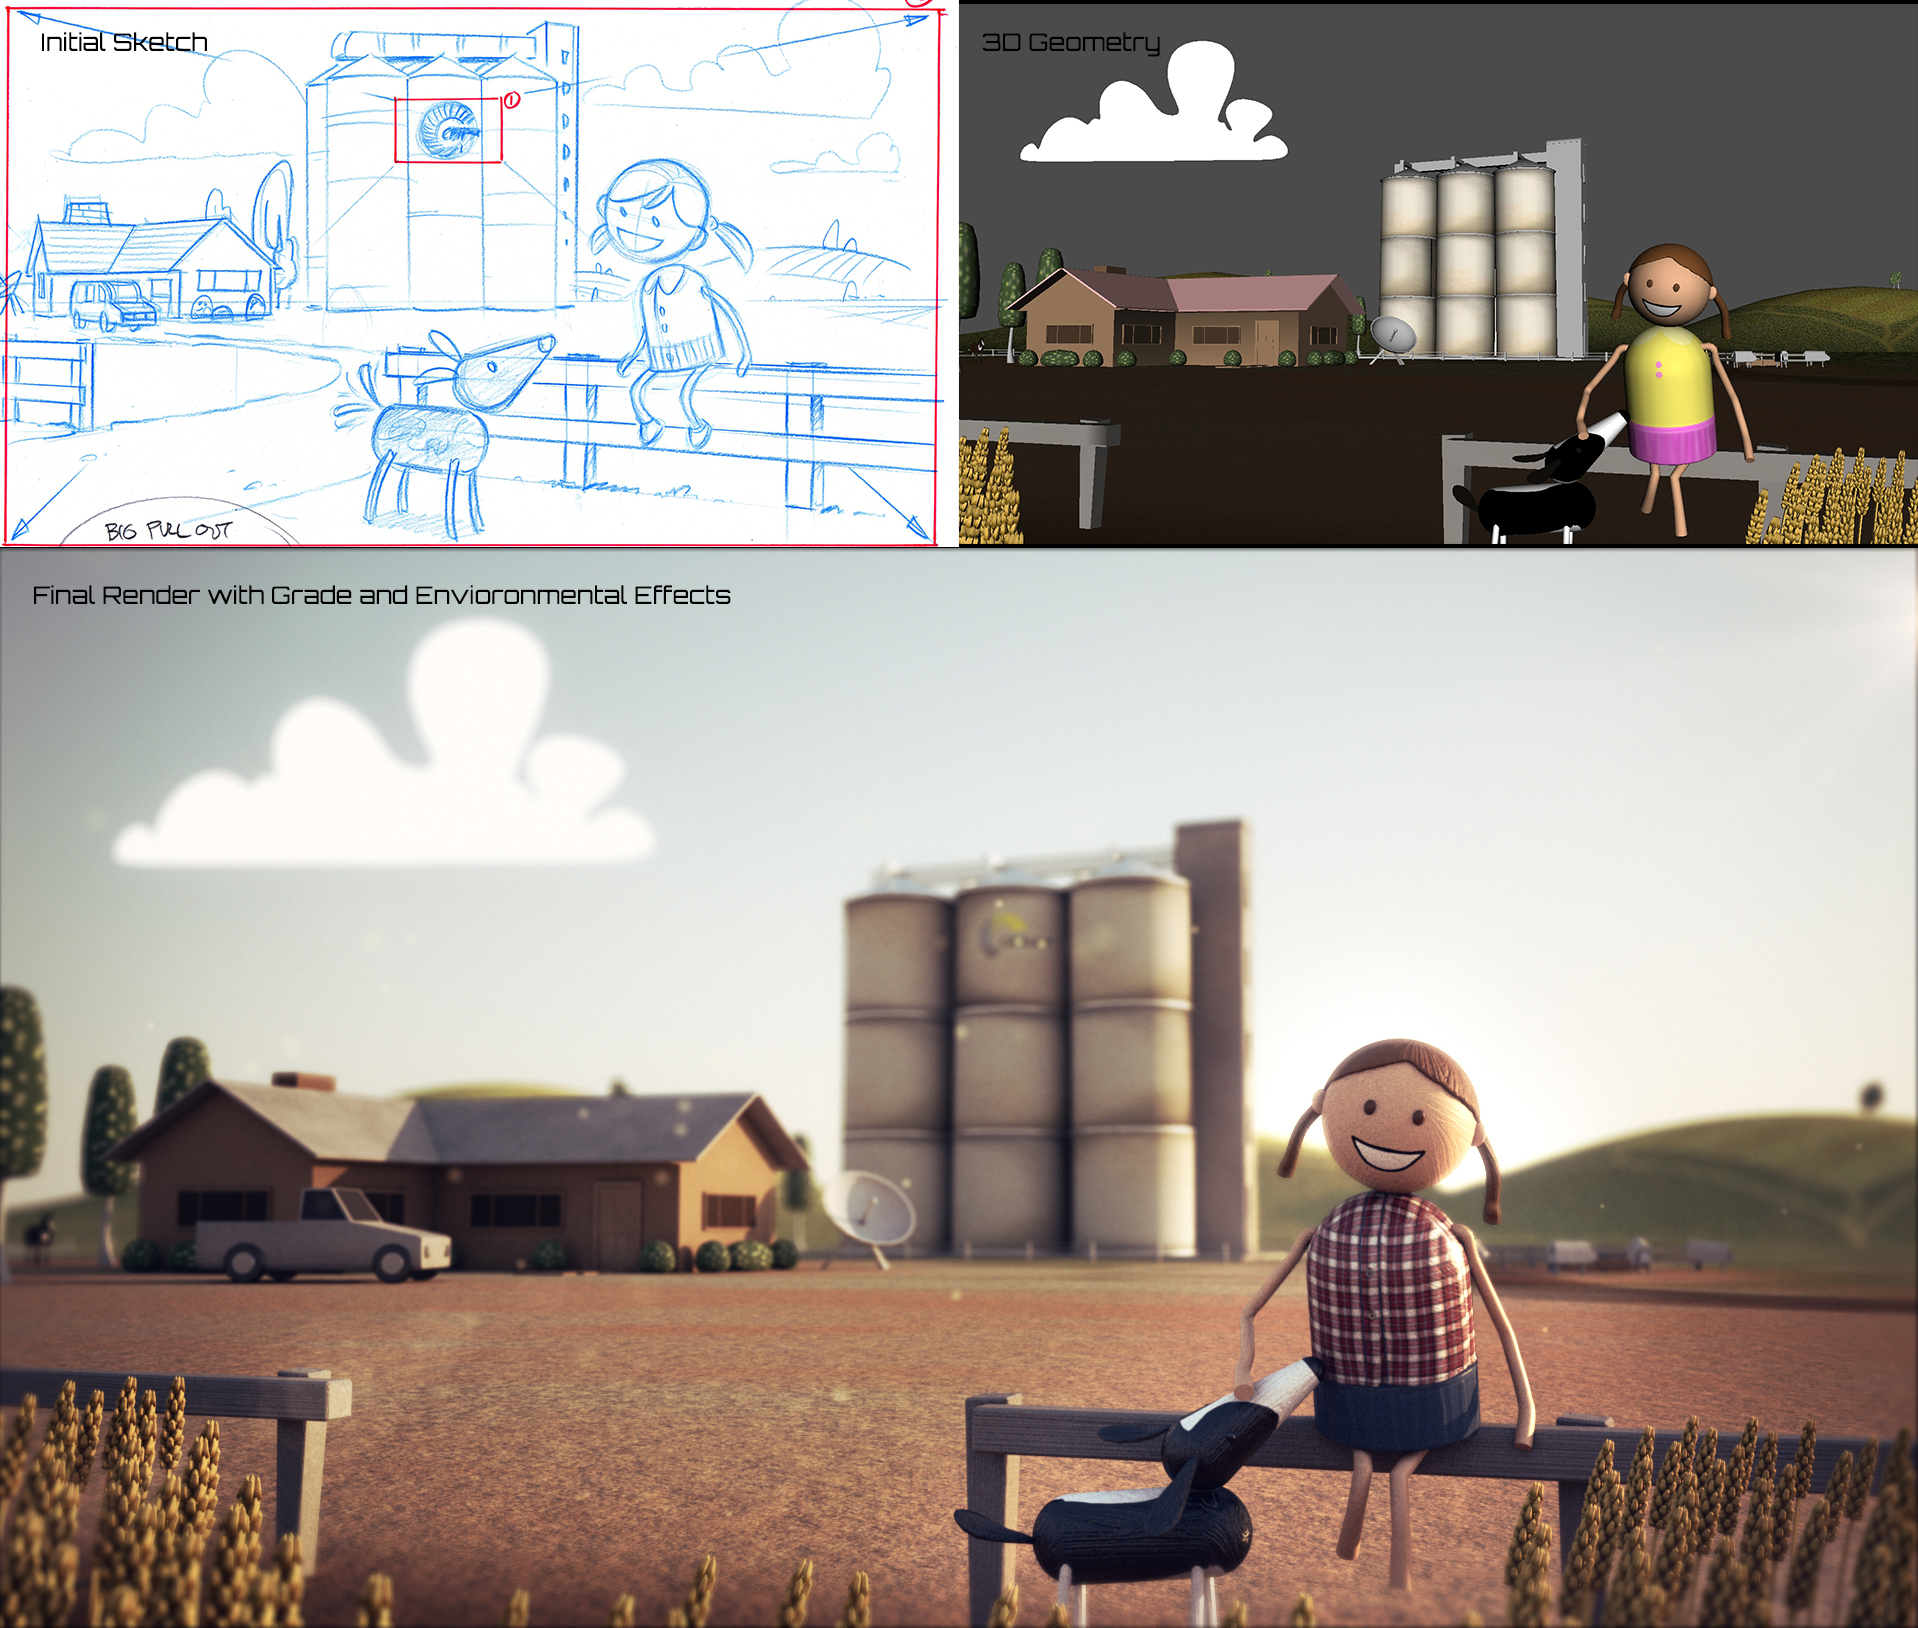 From top left,  initial sketch, top right 3D models assets created and placed into set, final render with grade and environmental effects such as depth of field sunrays and particles.